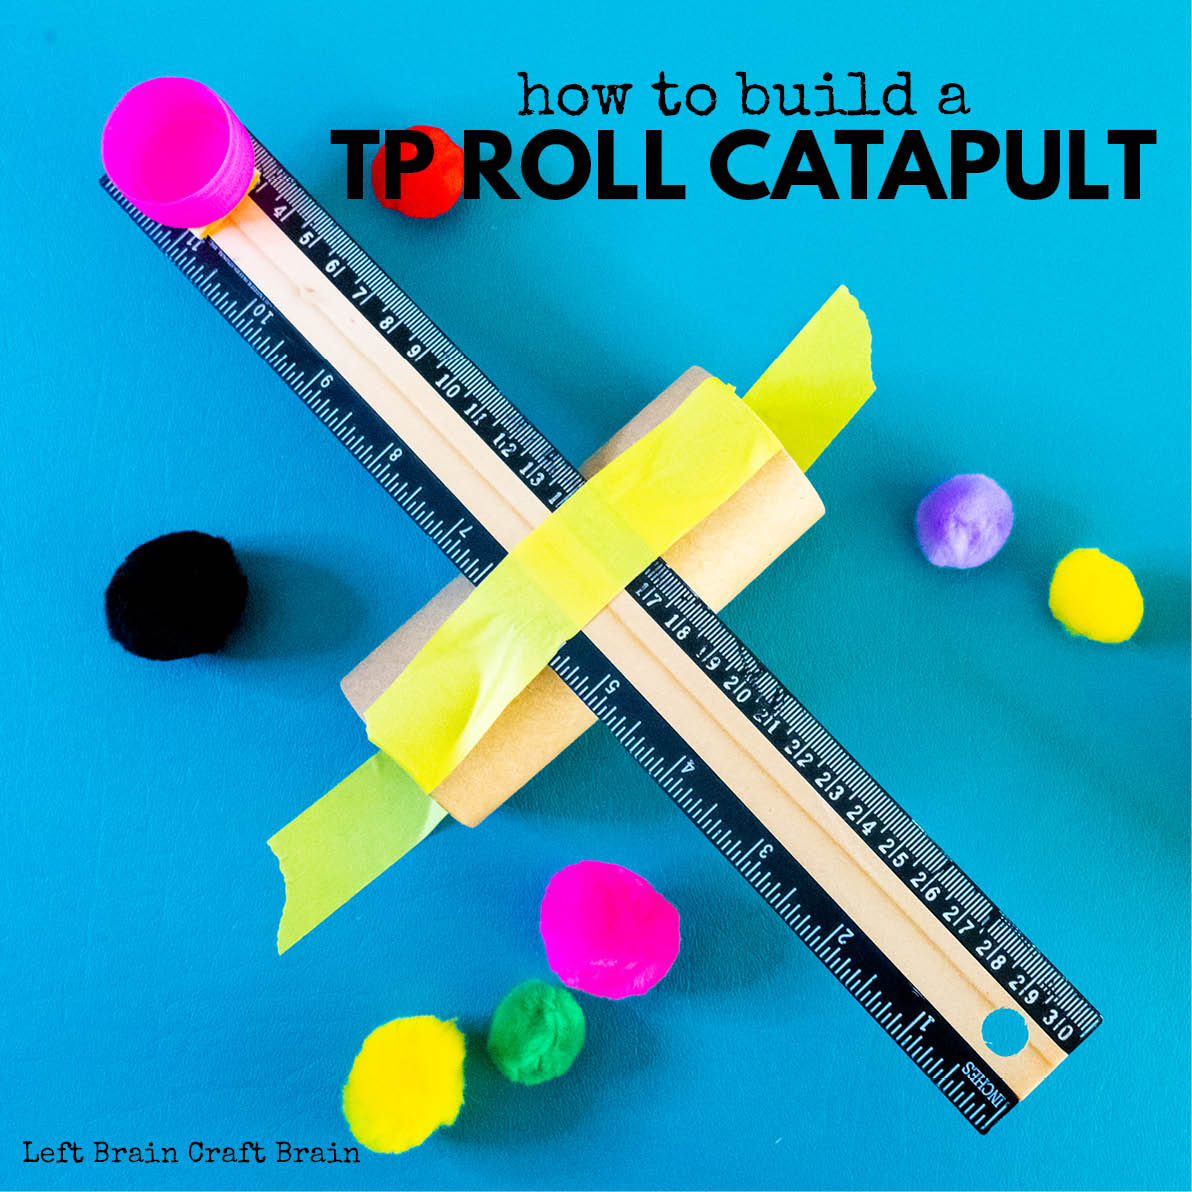 This Toilet Paper Roll Catapult is a fun STEM project for little kids or quick building sessions. Just raid your recycling bin and have fun!